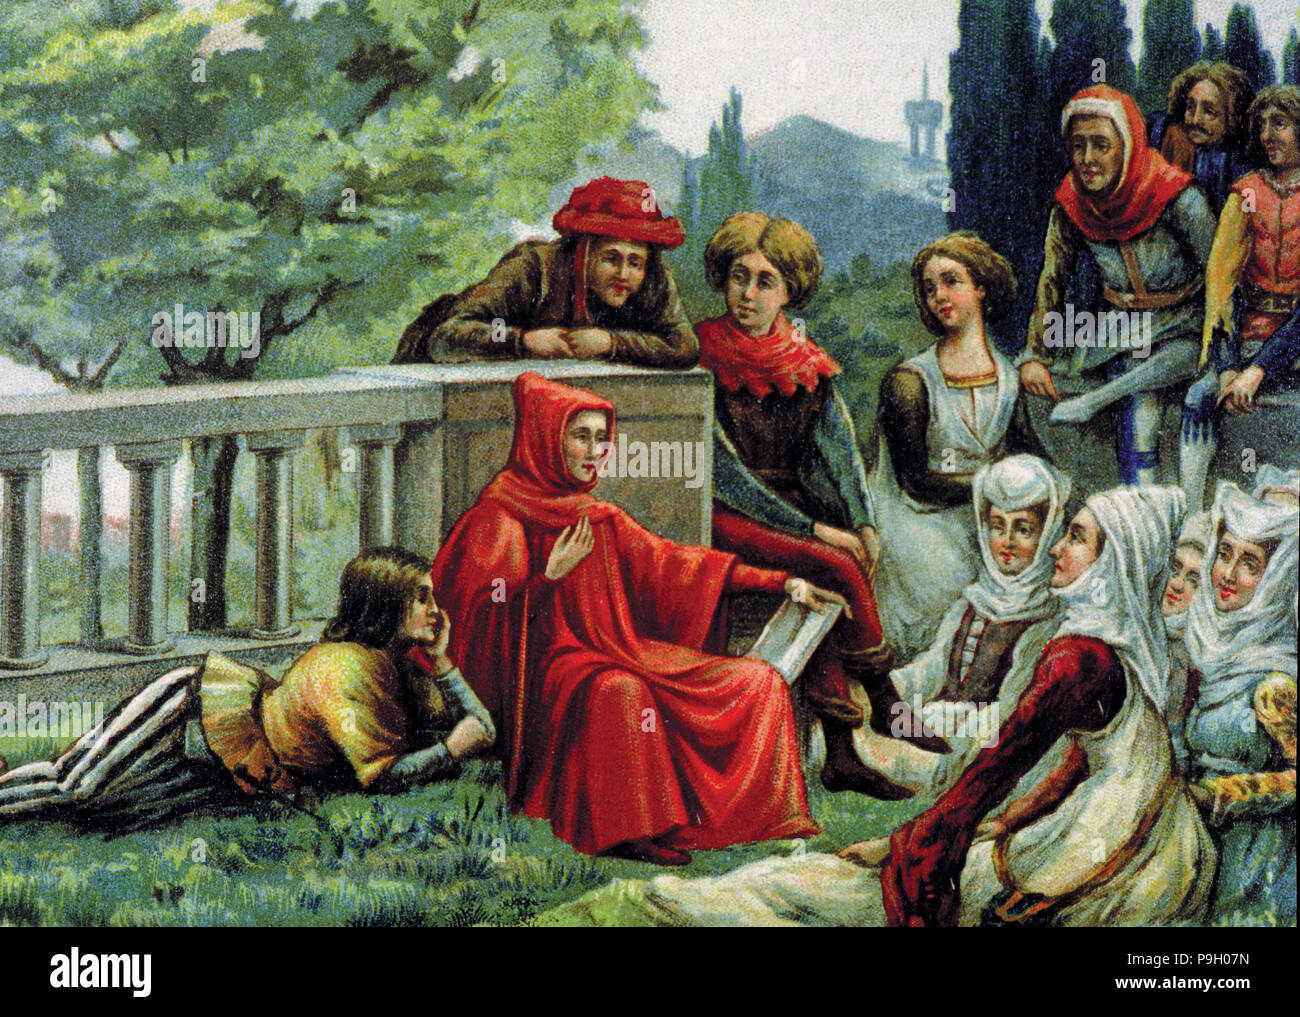 Boccaccio Decameron High Resolution Stock Photography And Images Alamy The Decameron